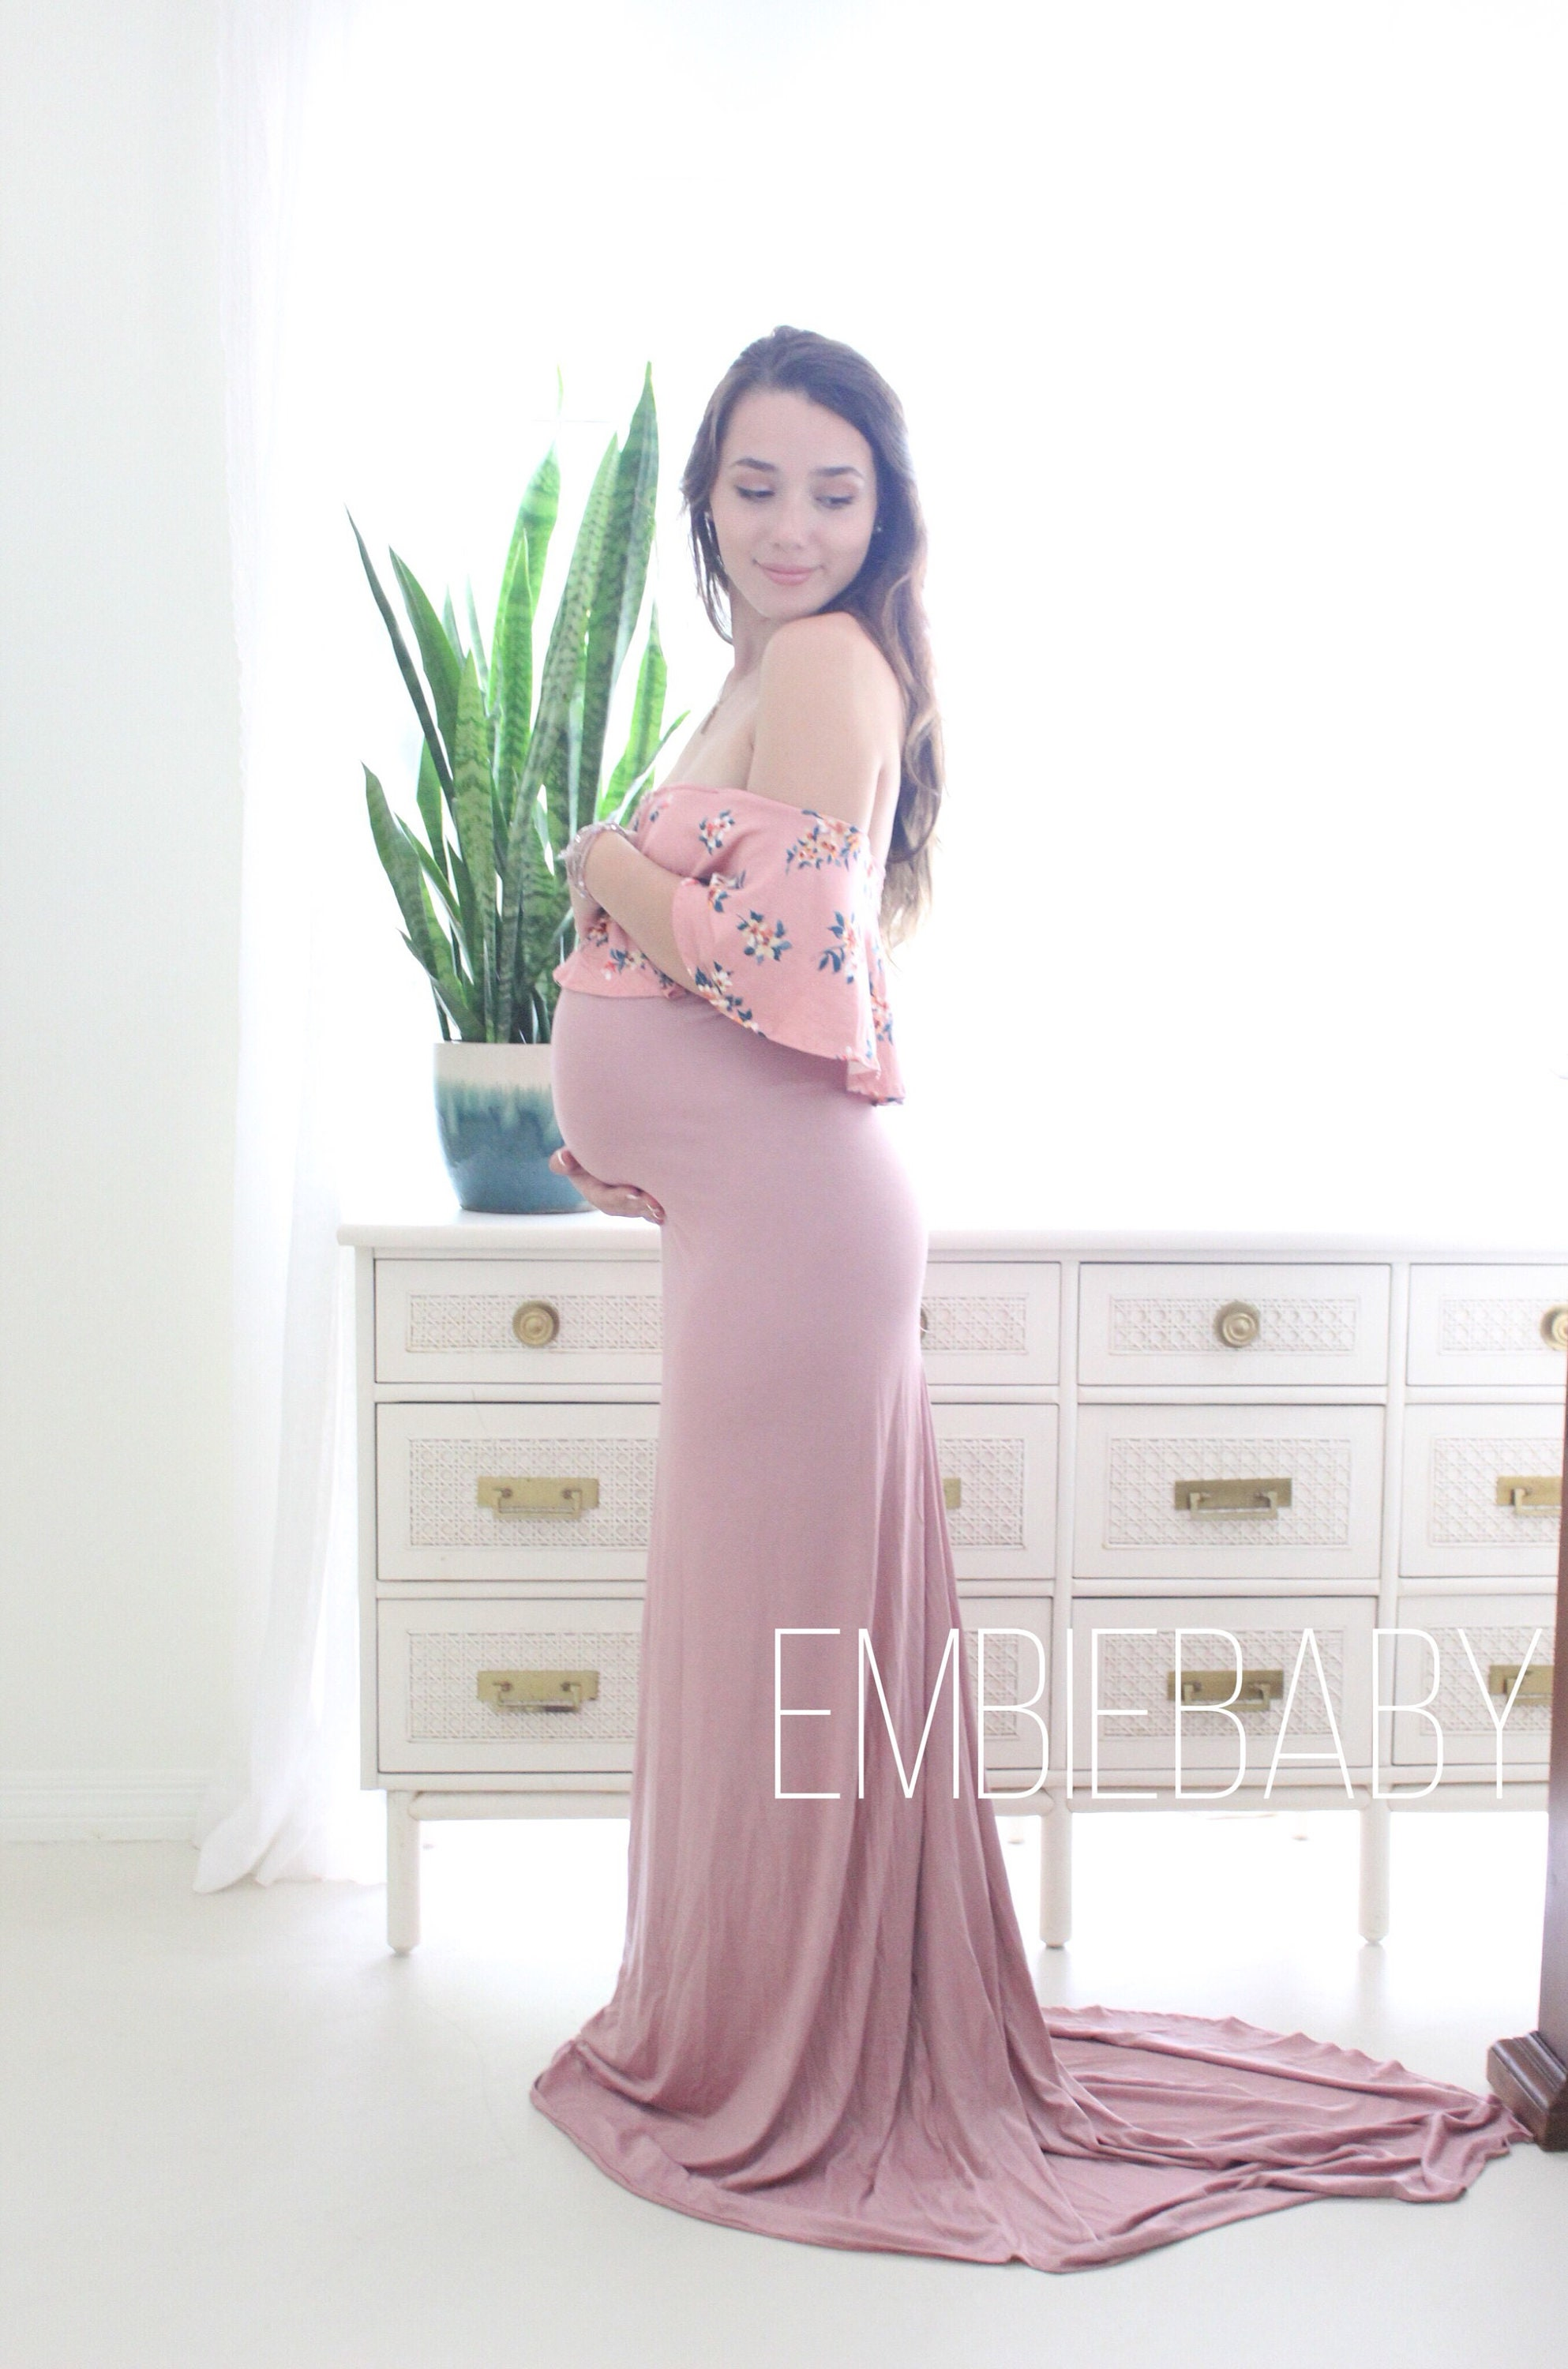 Maternity gown for baby shower maternity gown photo shoot | Etsy